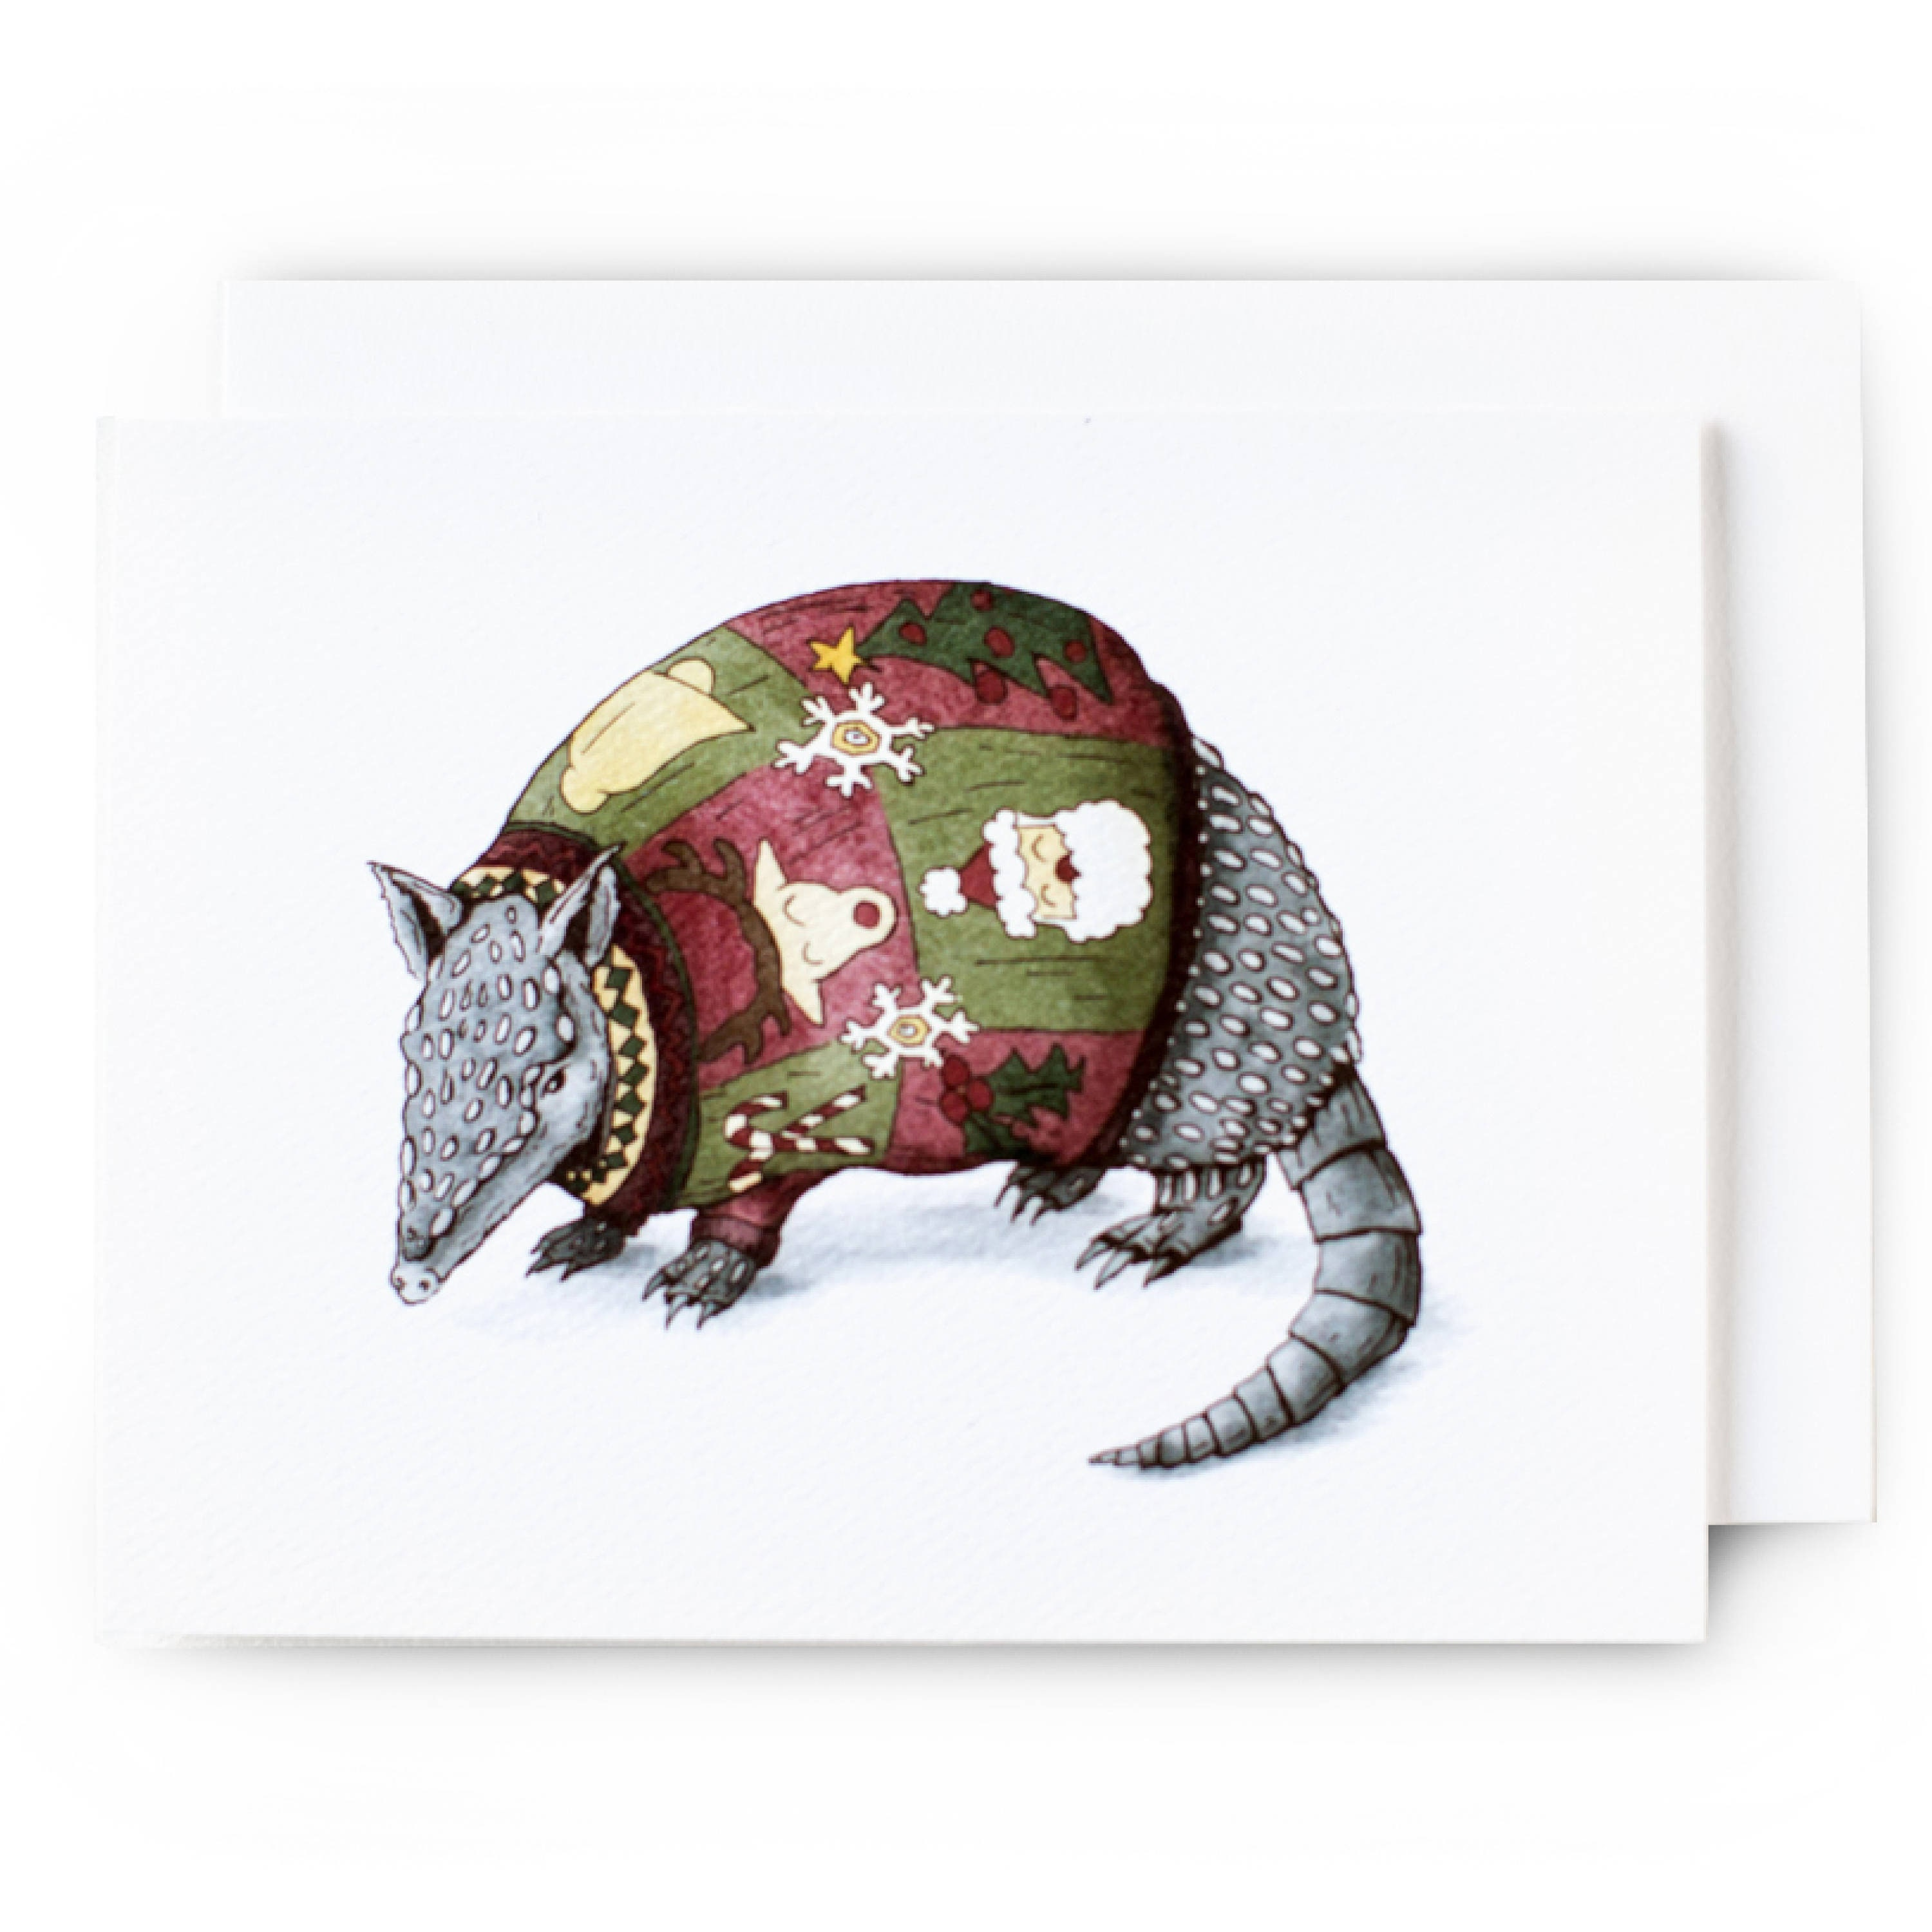 Texas Christmas Card Armadillo in an Ugly Christmas Sweater | Etsy